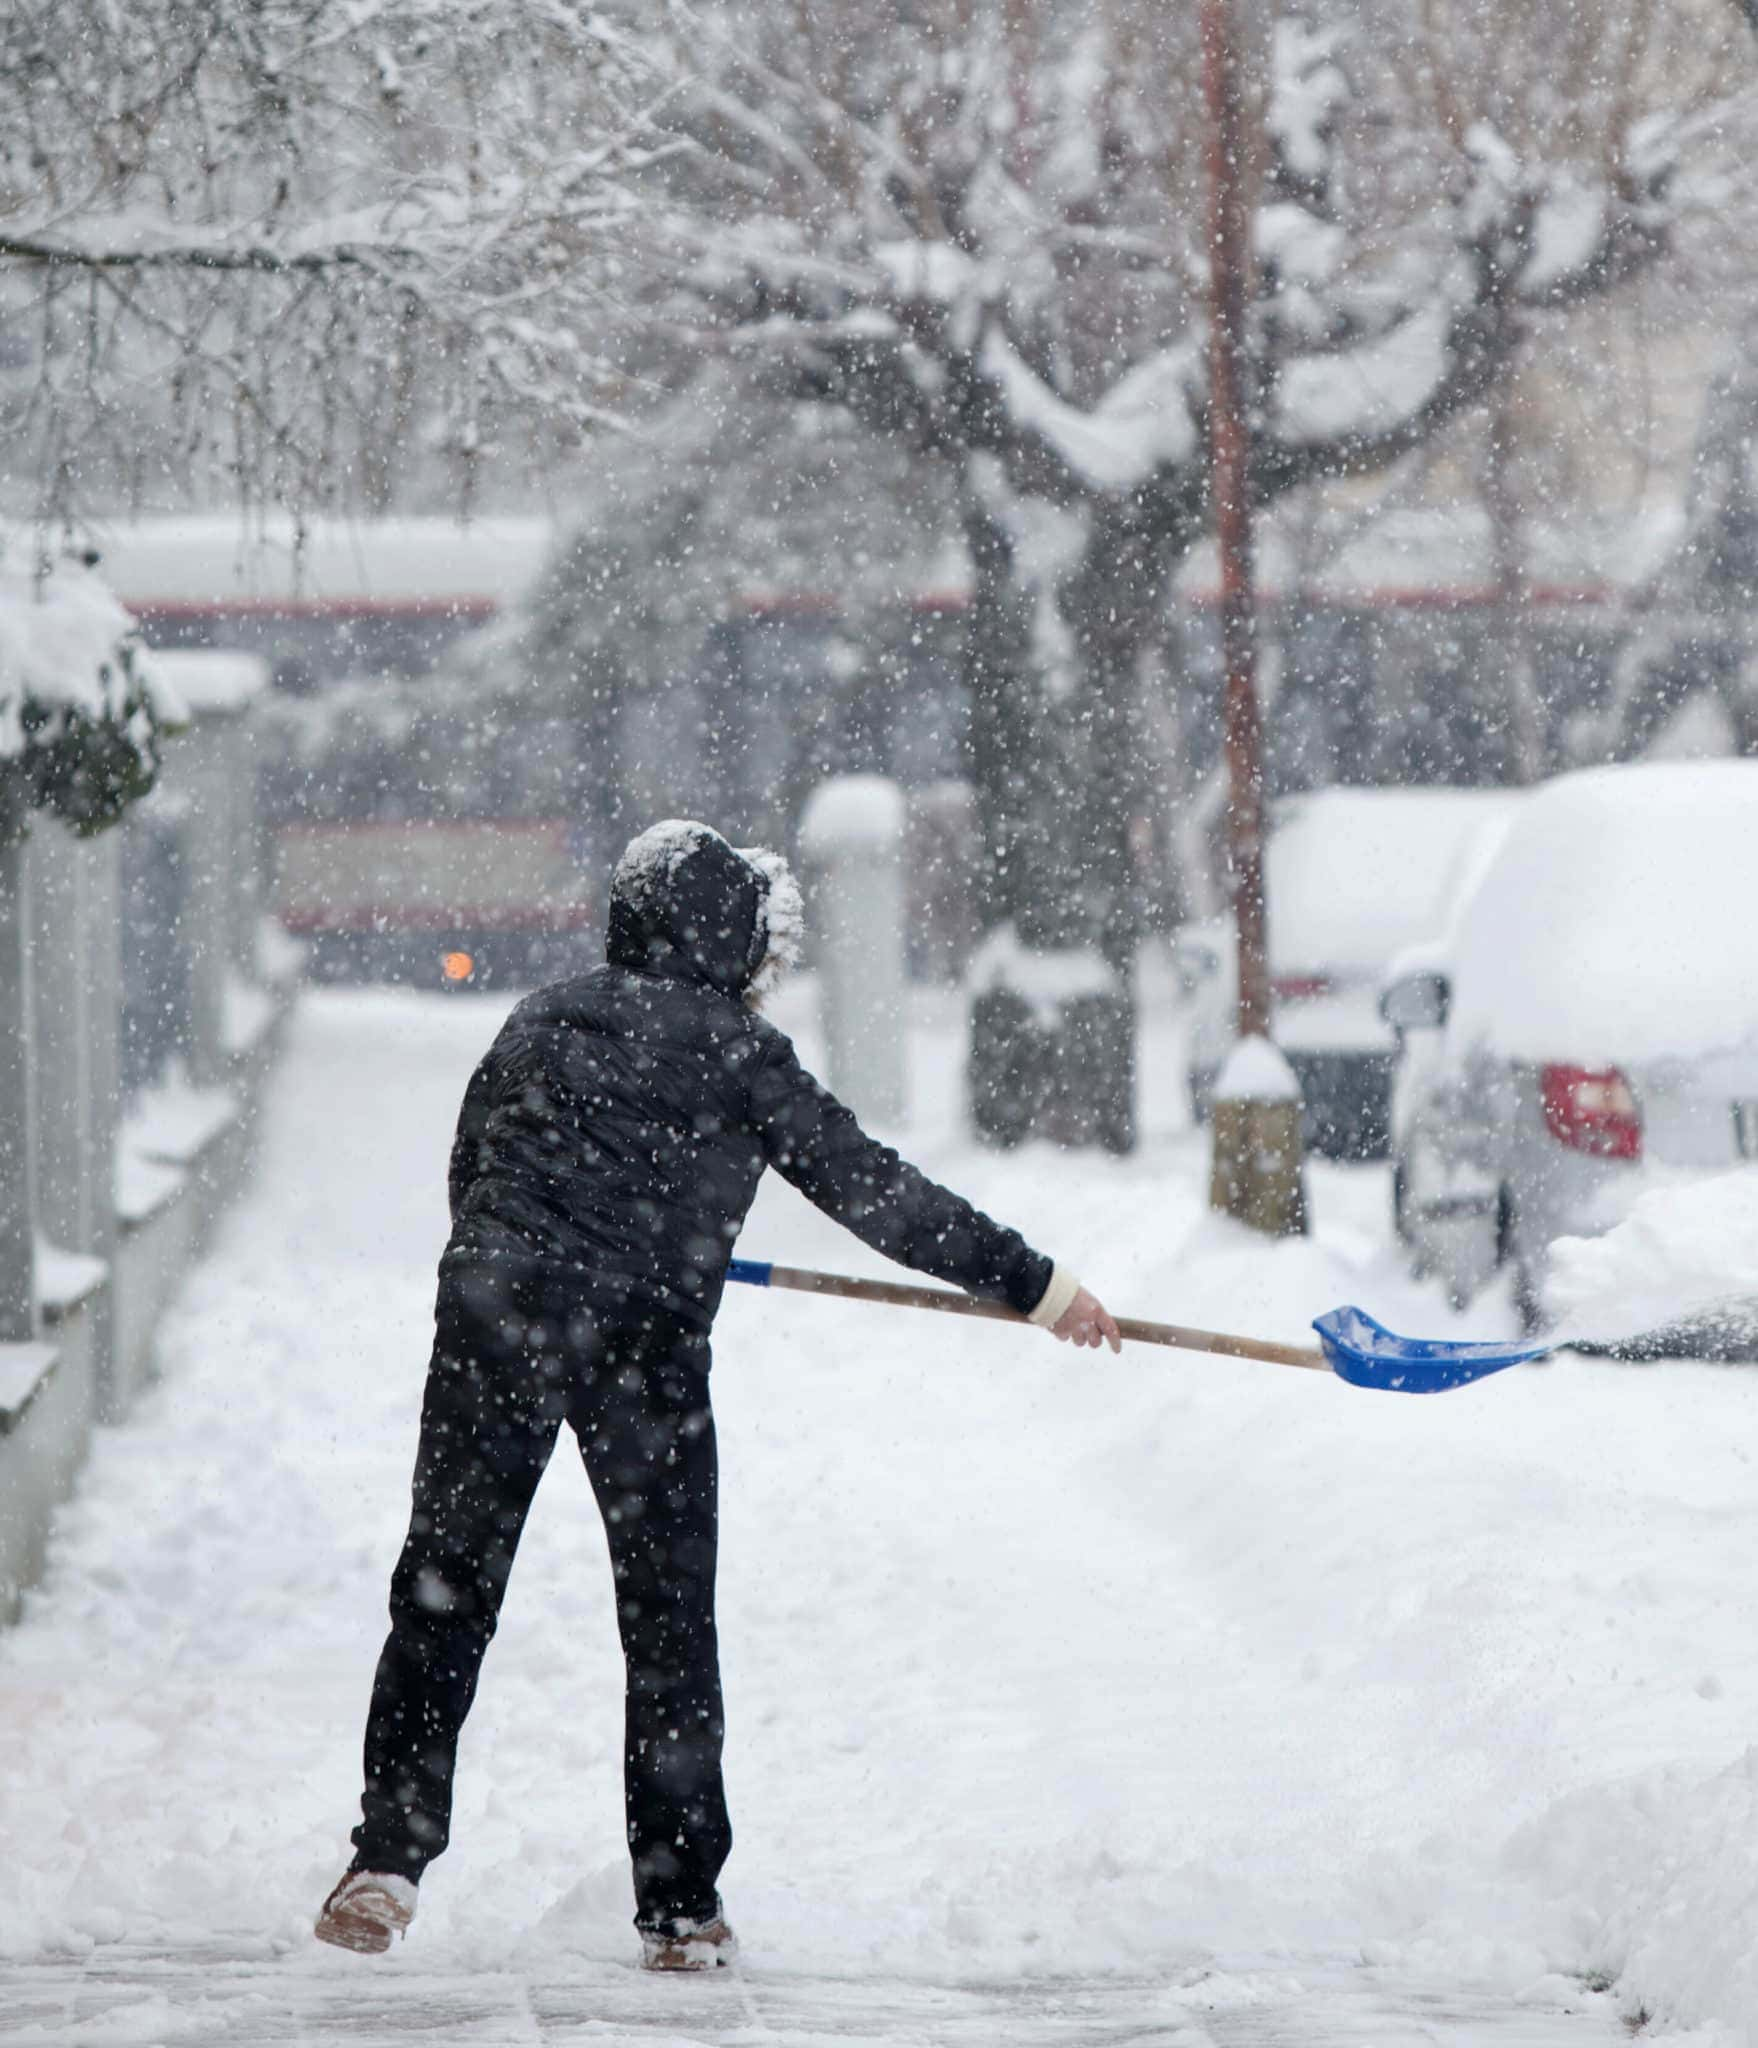 shoveling-sidewalk-hoa-snow-removal-policy